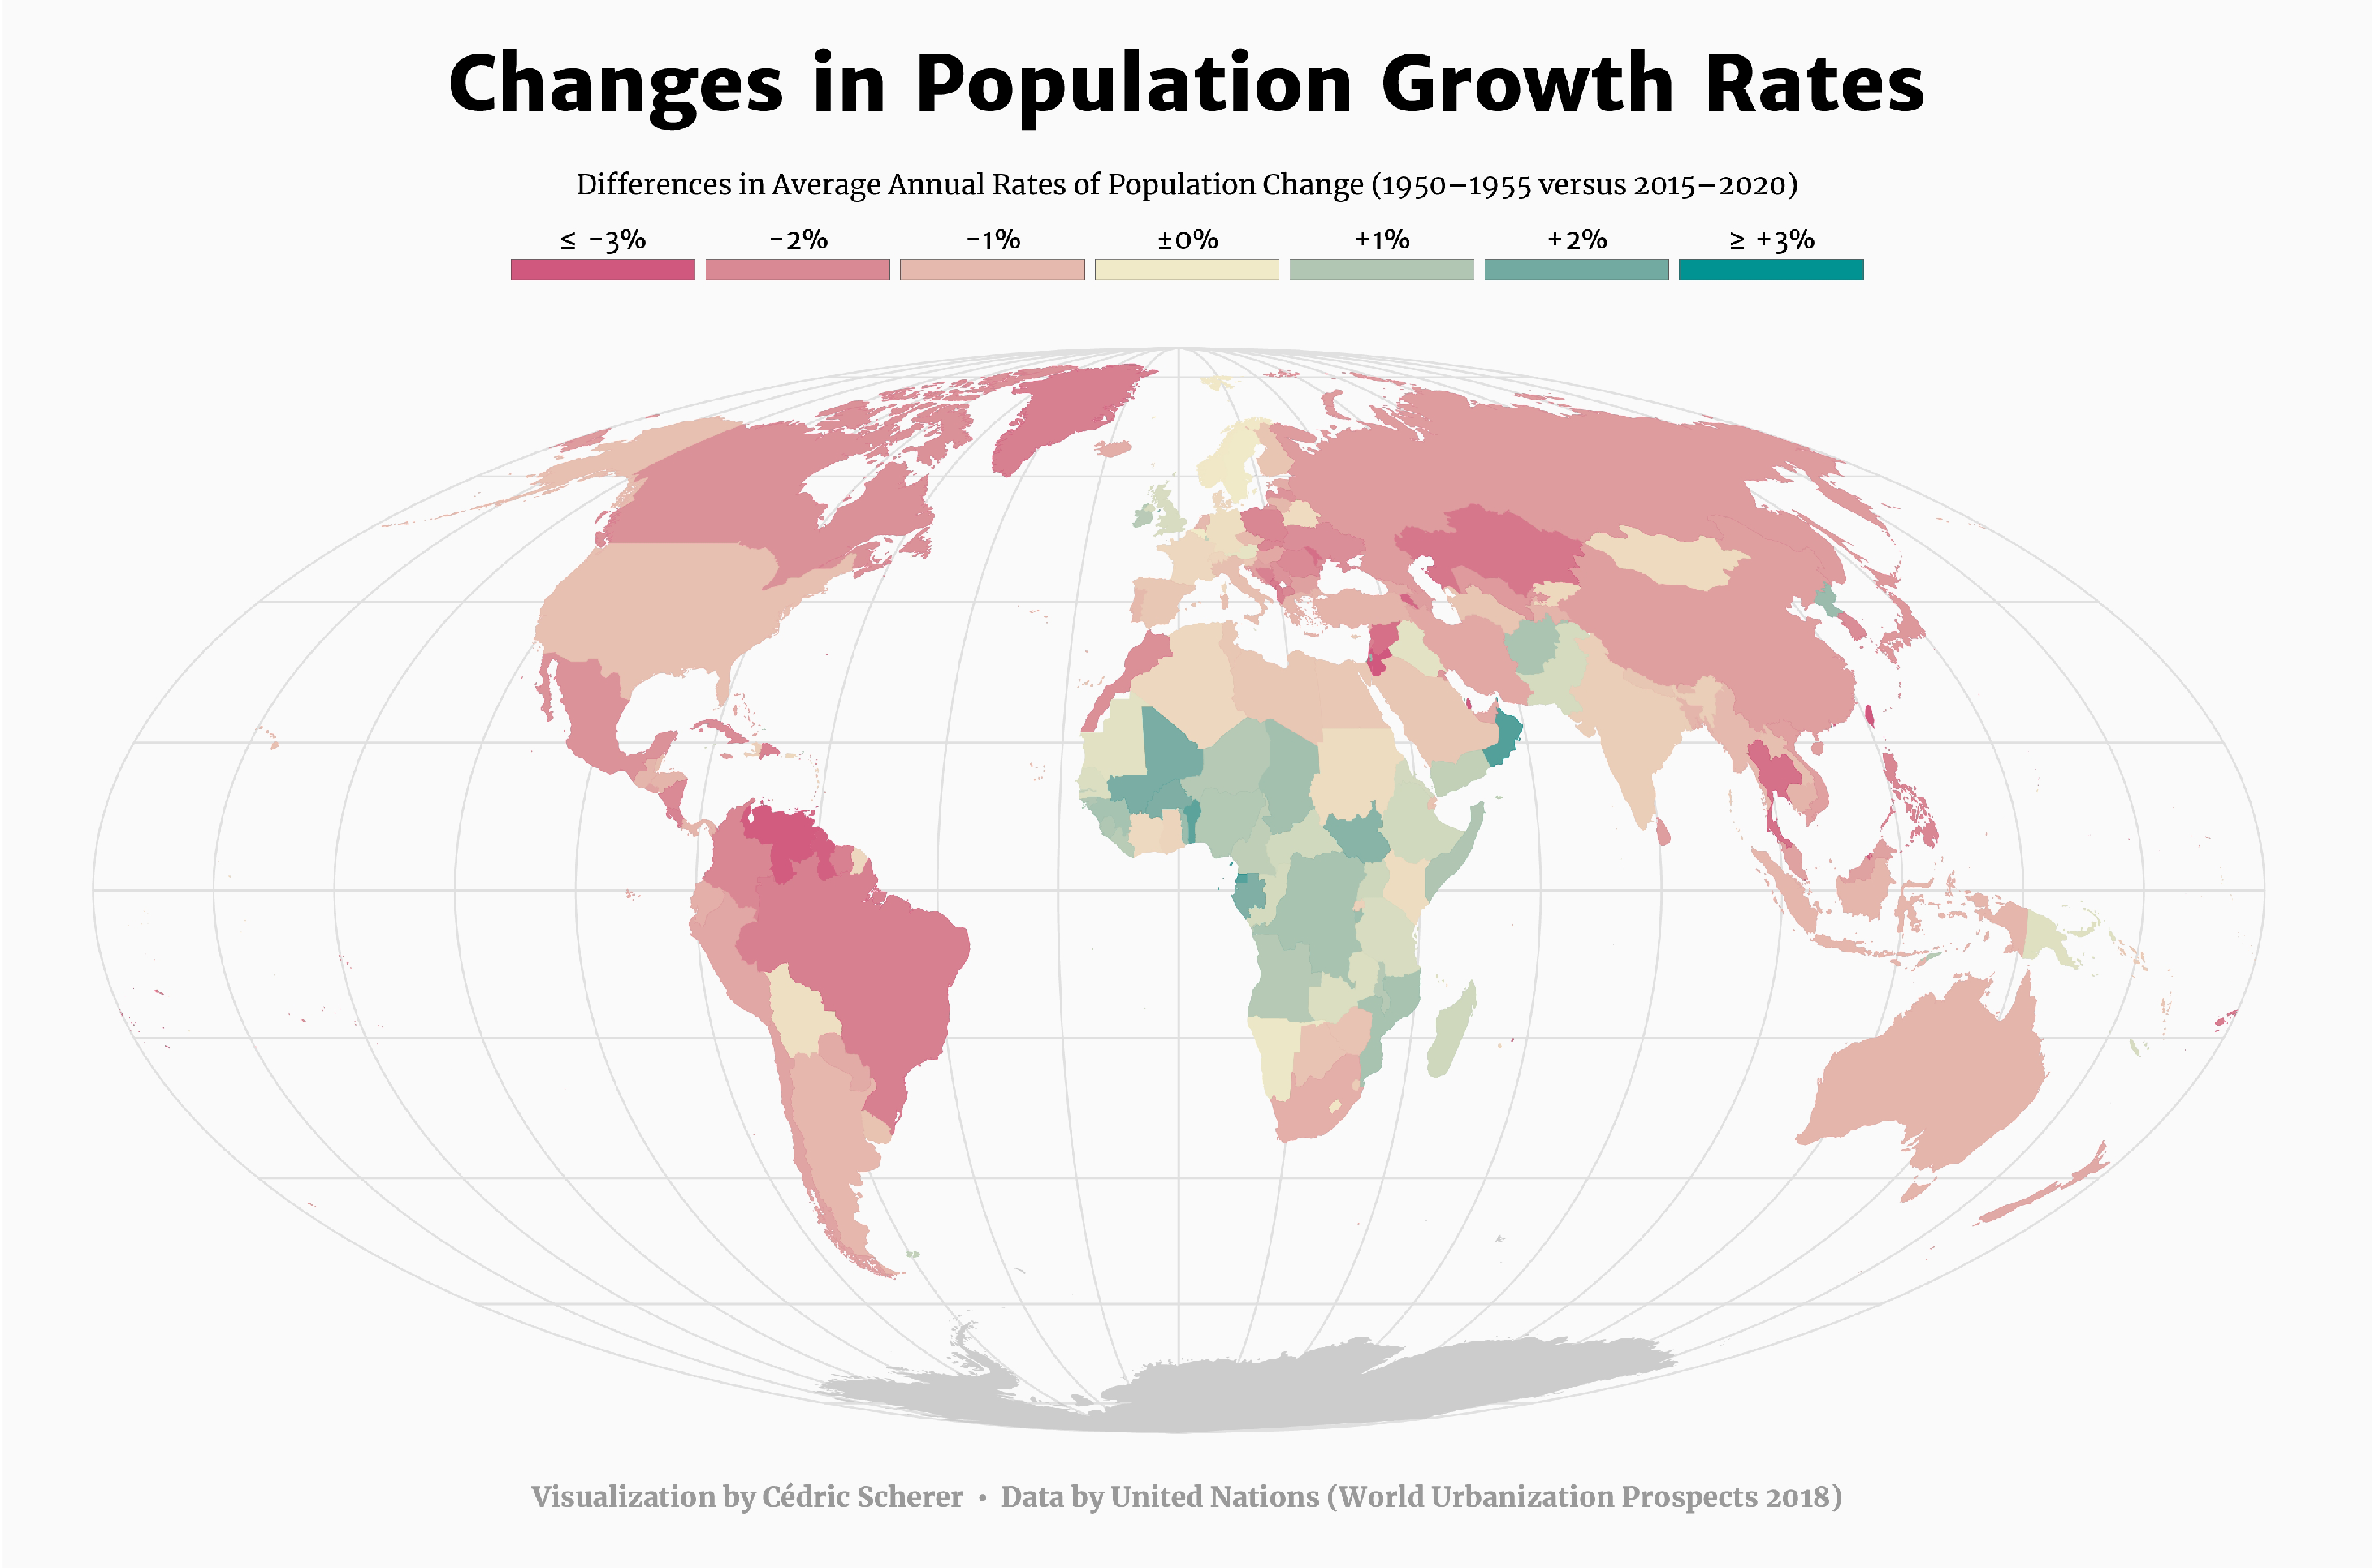 ./Day23_Population/Population_ChangeGlobal_diff.png